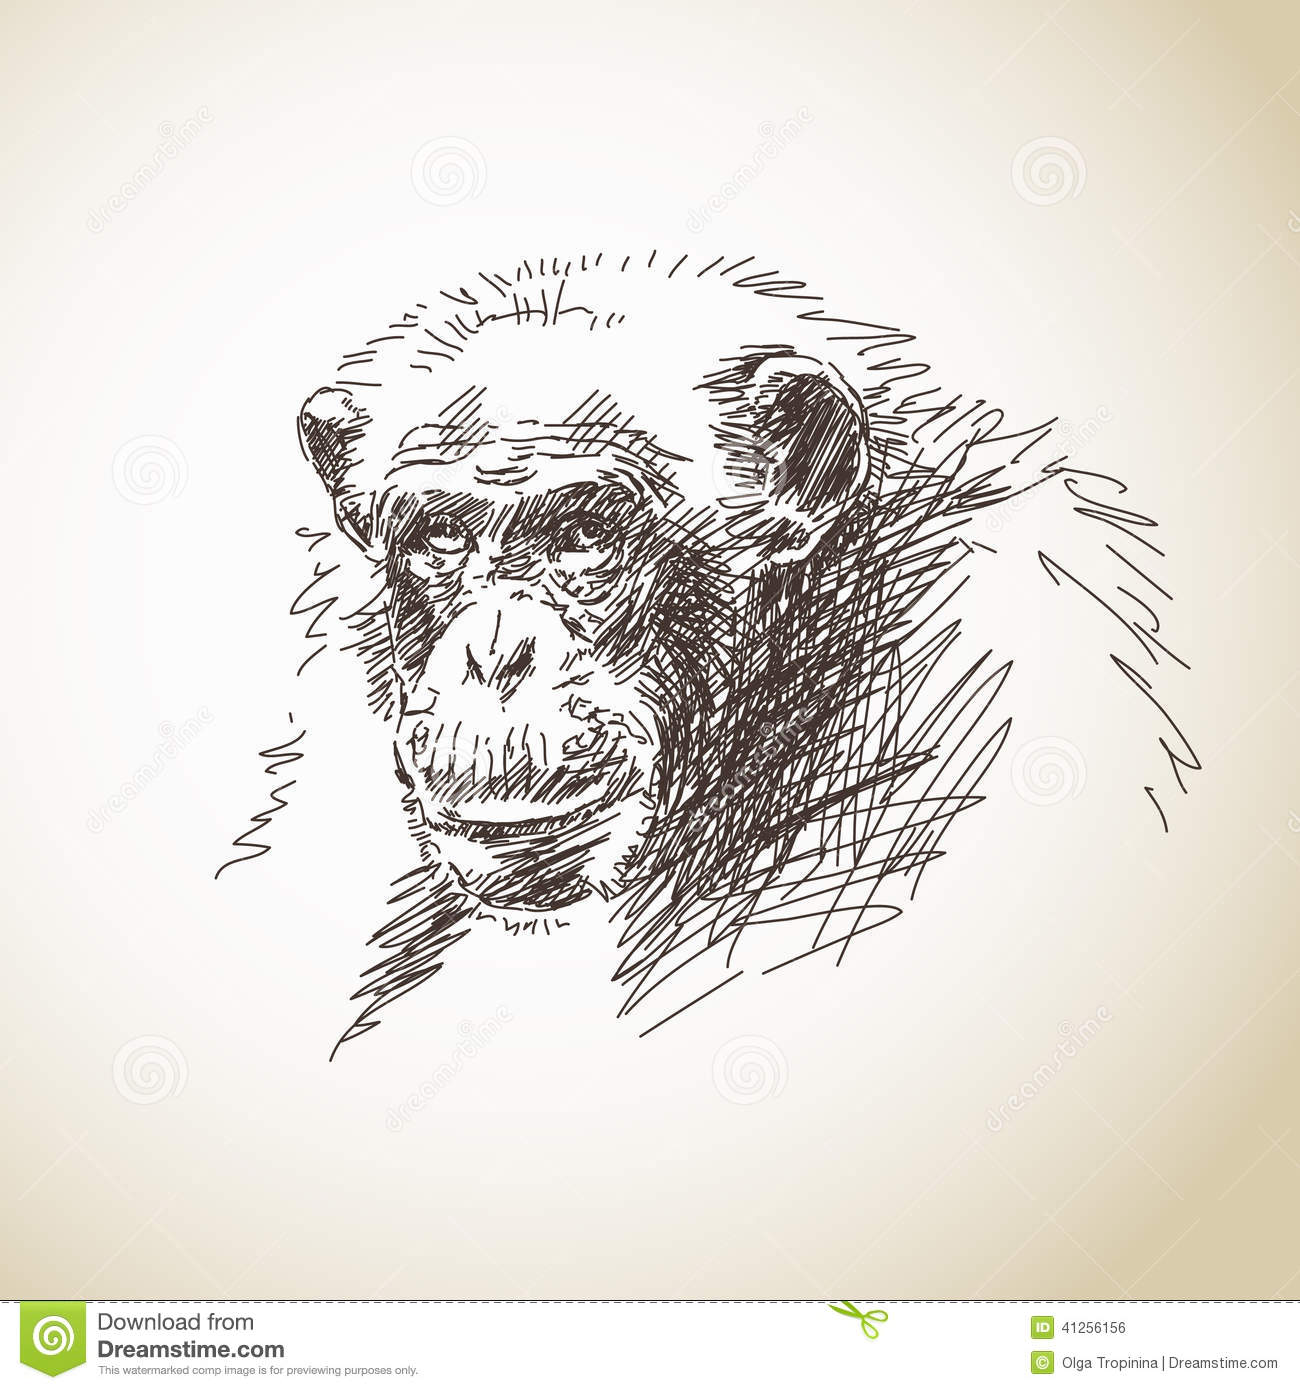 Sketch Of Chimpanzee Stock Vector. Illustration Of Evolution - 41256156